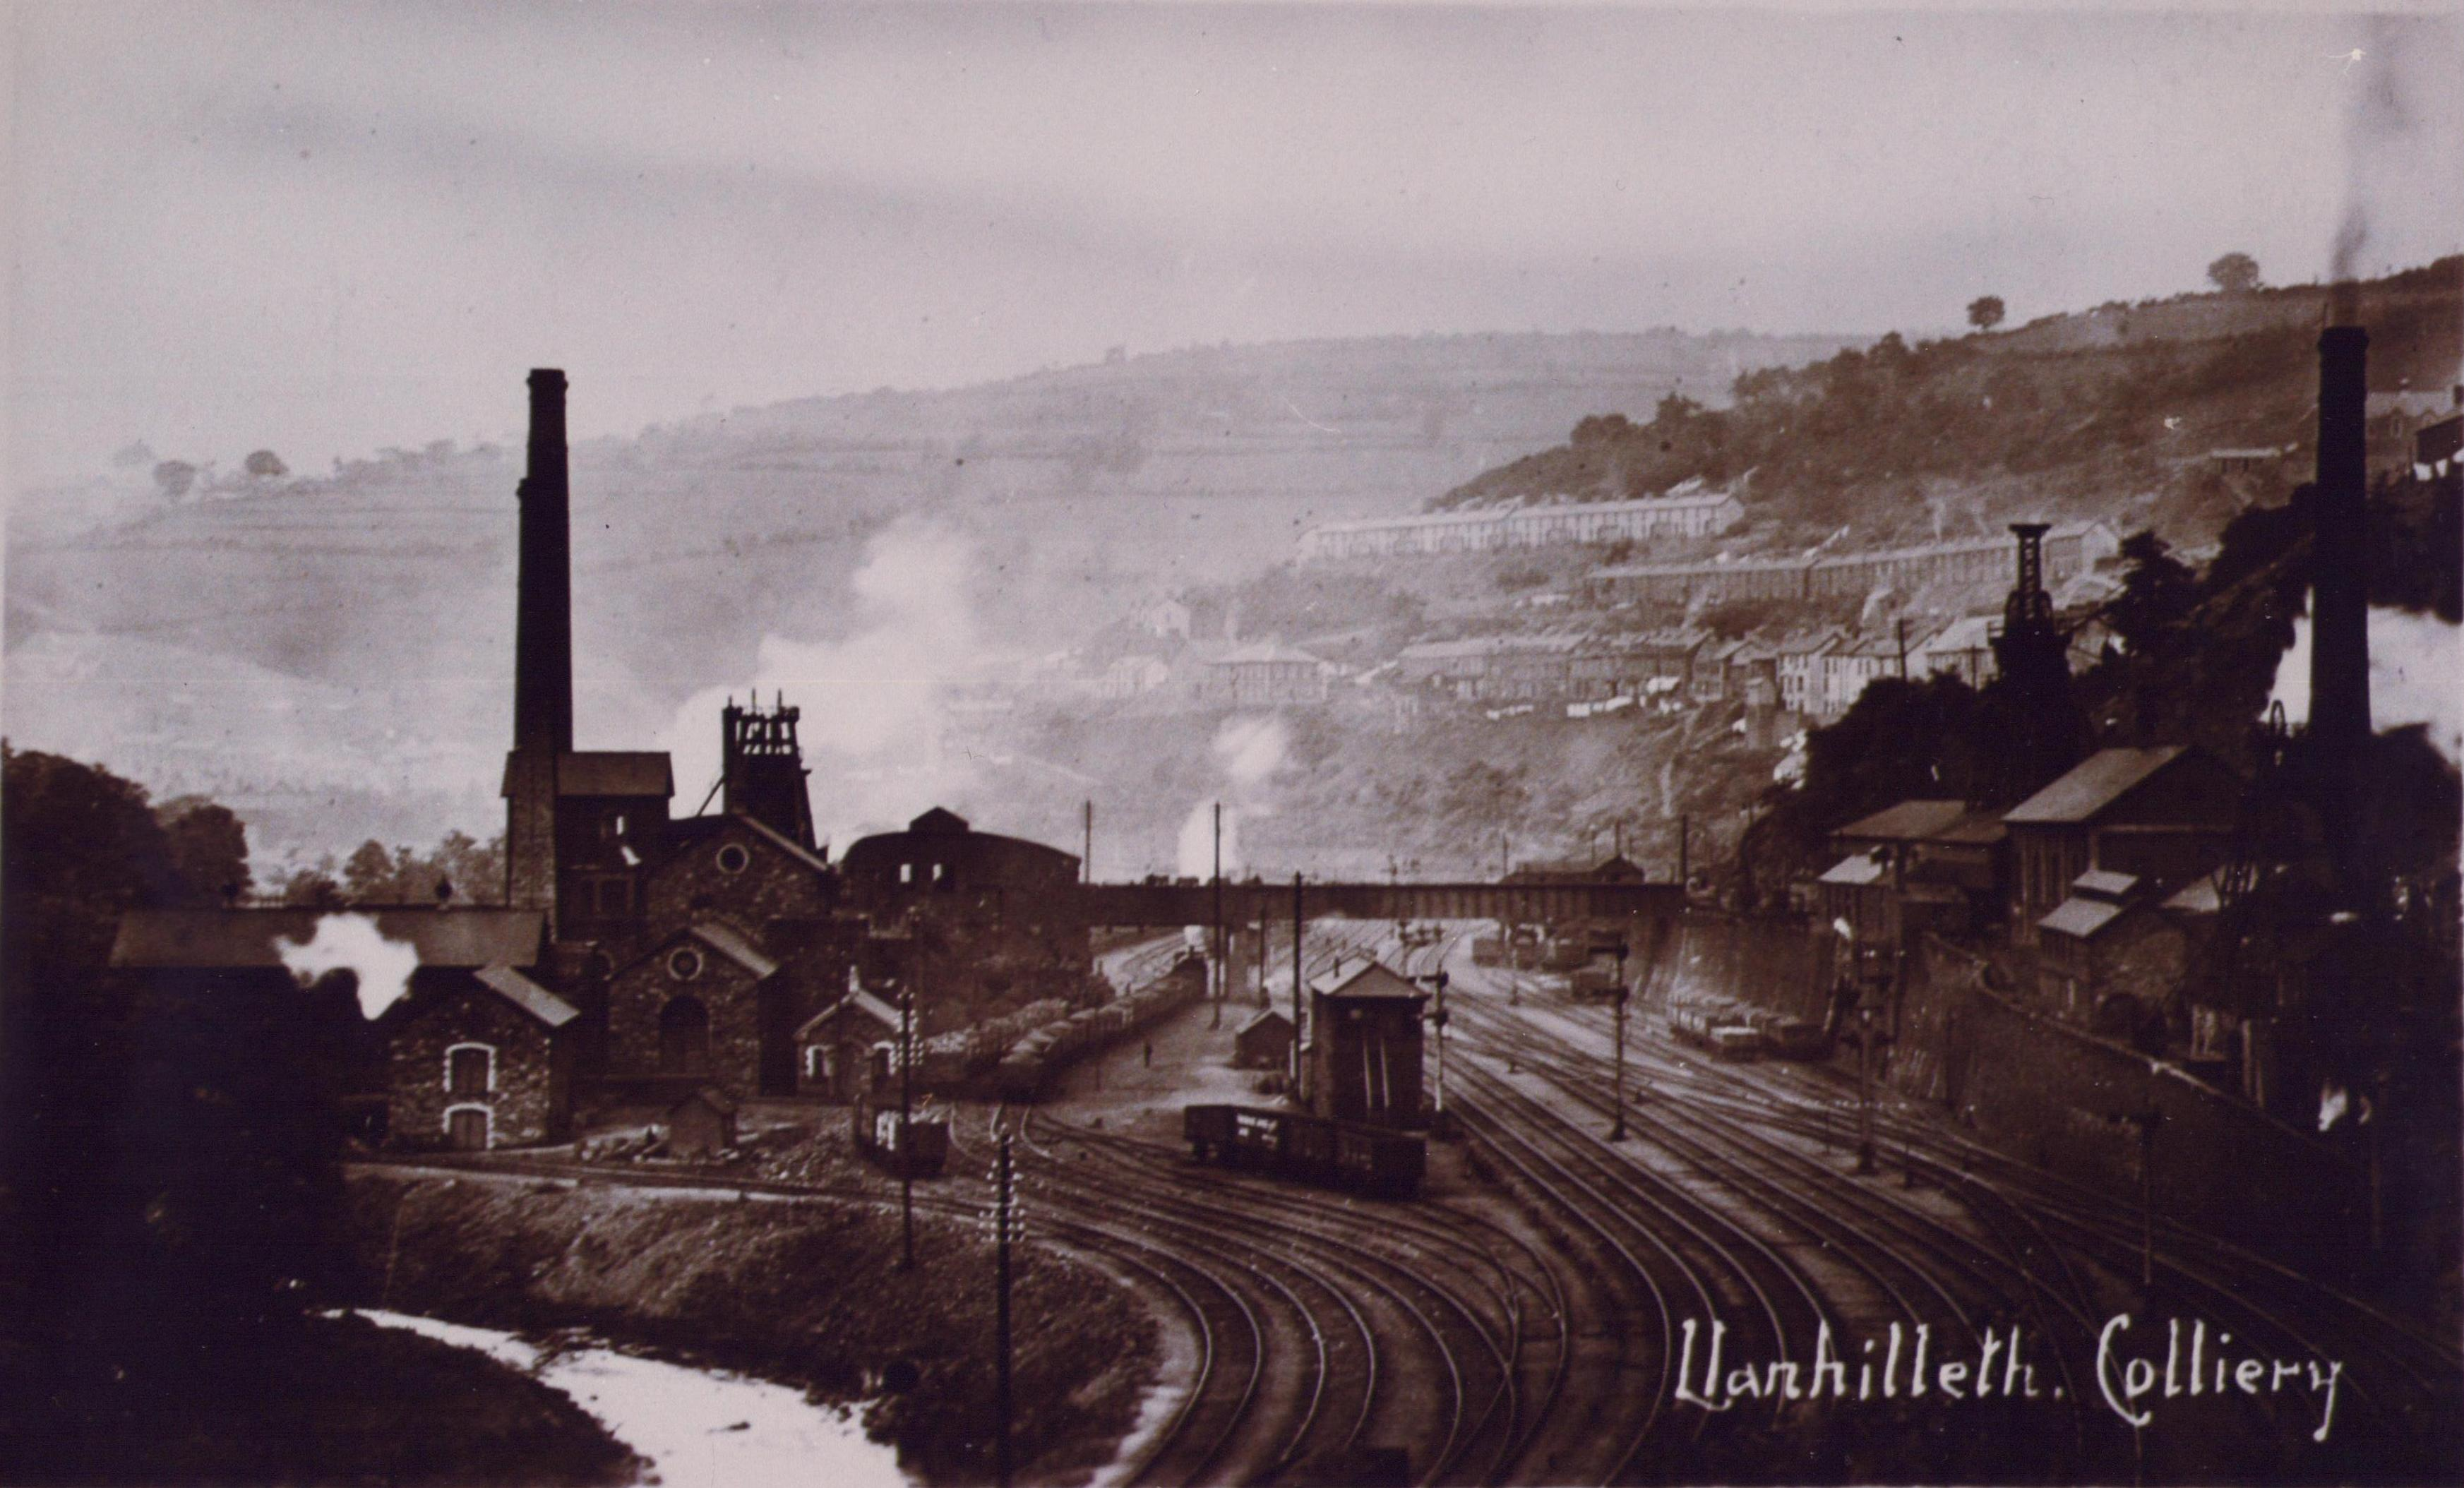 Llanhilleth Colliery No. 1 & 2 Pits 5